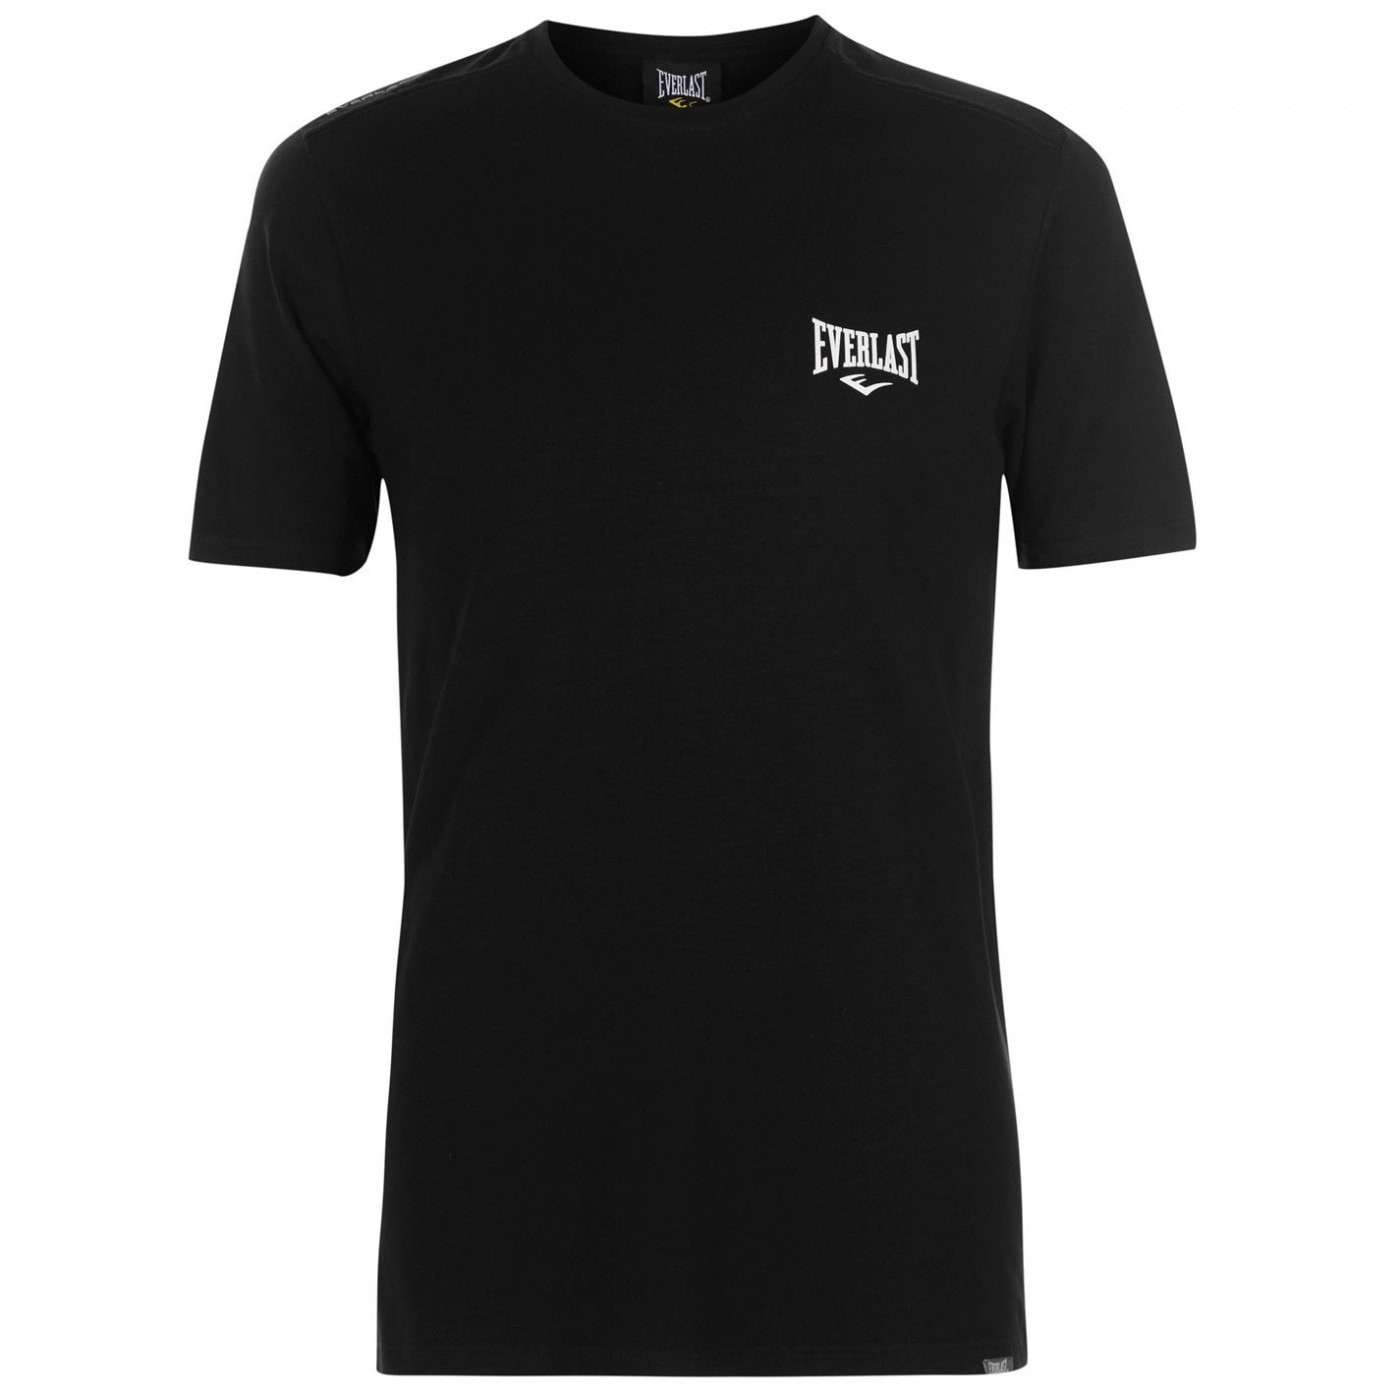 Everlast Logo T Shirt Mens